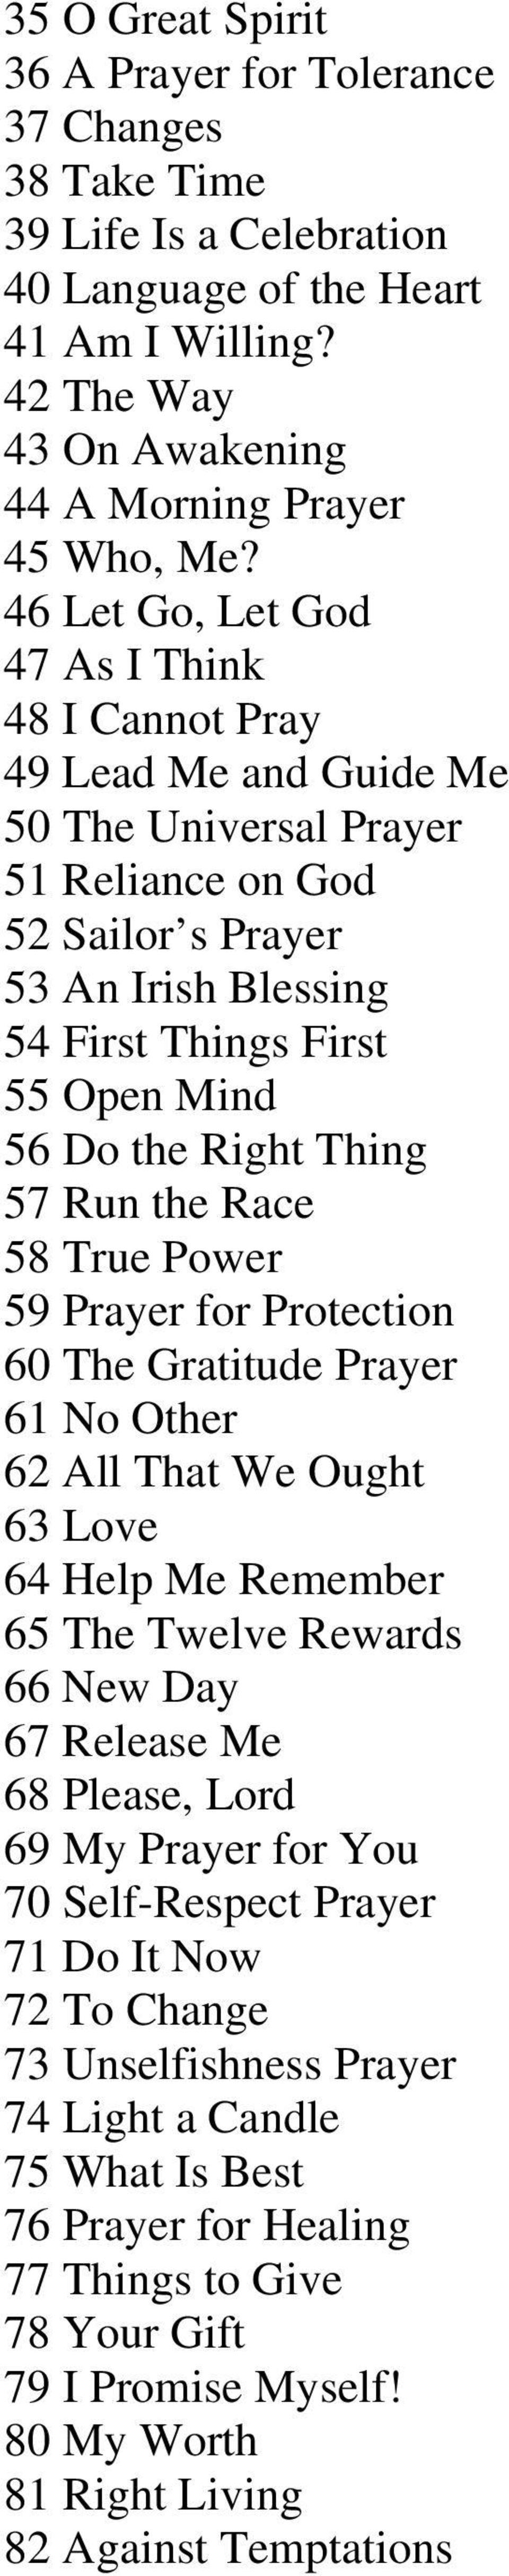 the Right Thing 57 Run the Race 58 True Power 59 Prayer for Protection 60 The Gratitude Prayer 61 No Other 62 All That We Ought 63 Love 64 Help Me Remember 65 The Twelve Rewards 66 New Day 67 Release